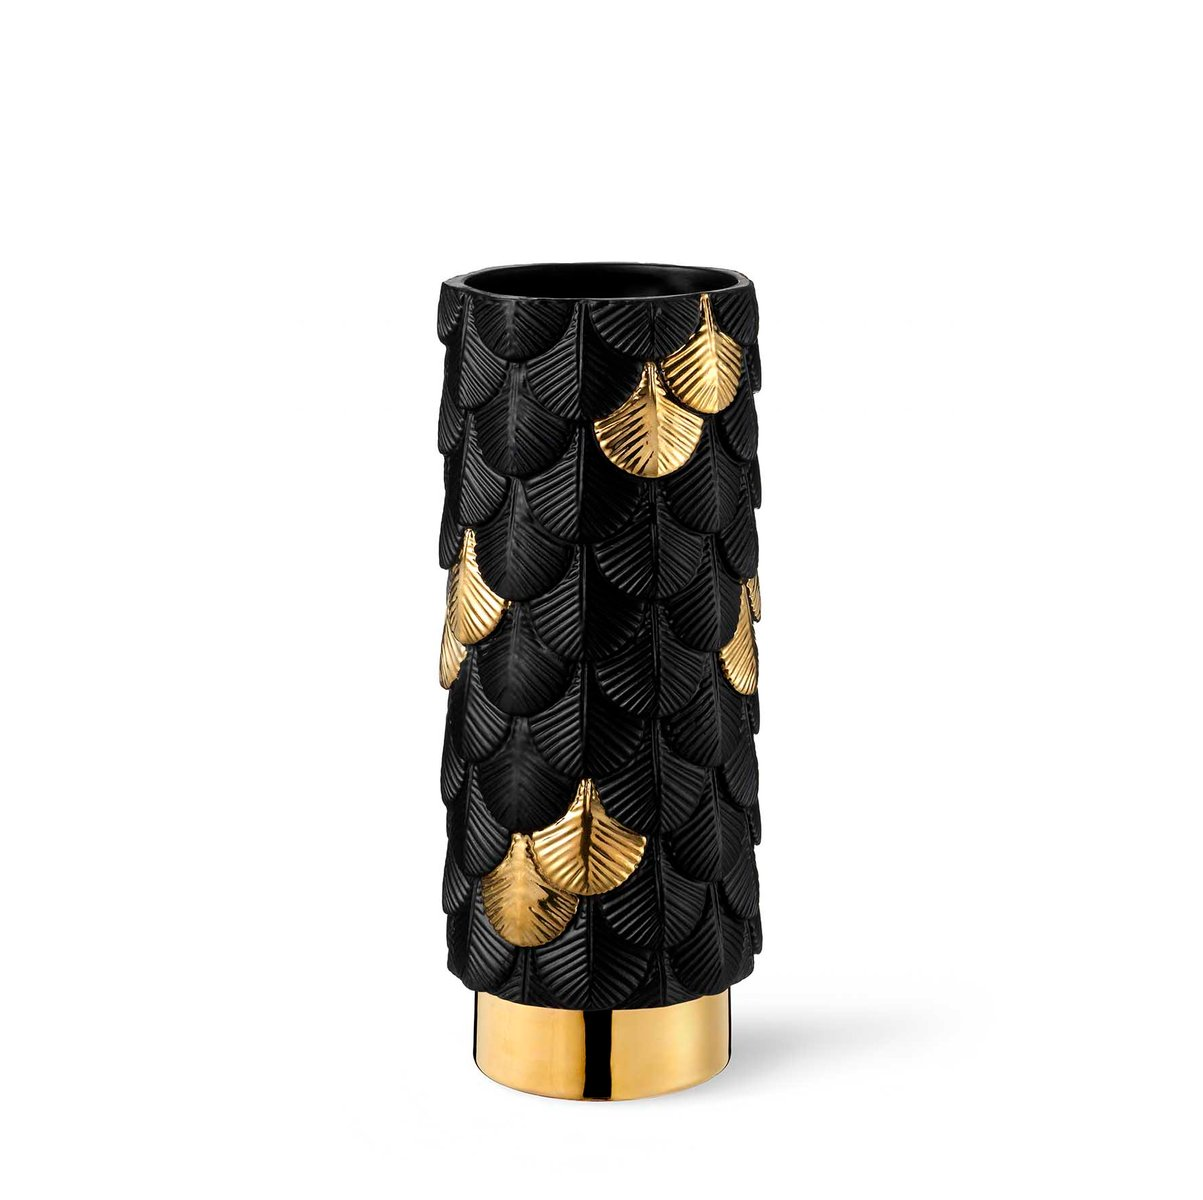 hand dekorierte plumage vase in mattem schwarz gold von cristina celestino f r botteganove bei. Black Bedroom Furniture Sets. Home Design Ideas